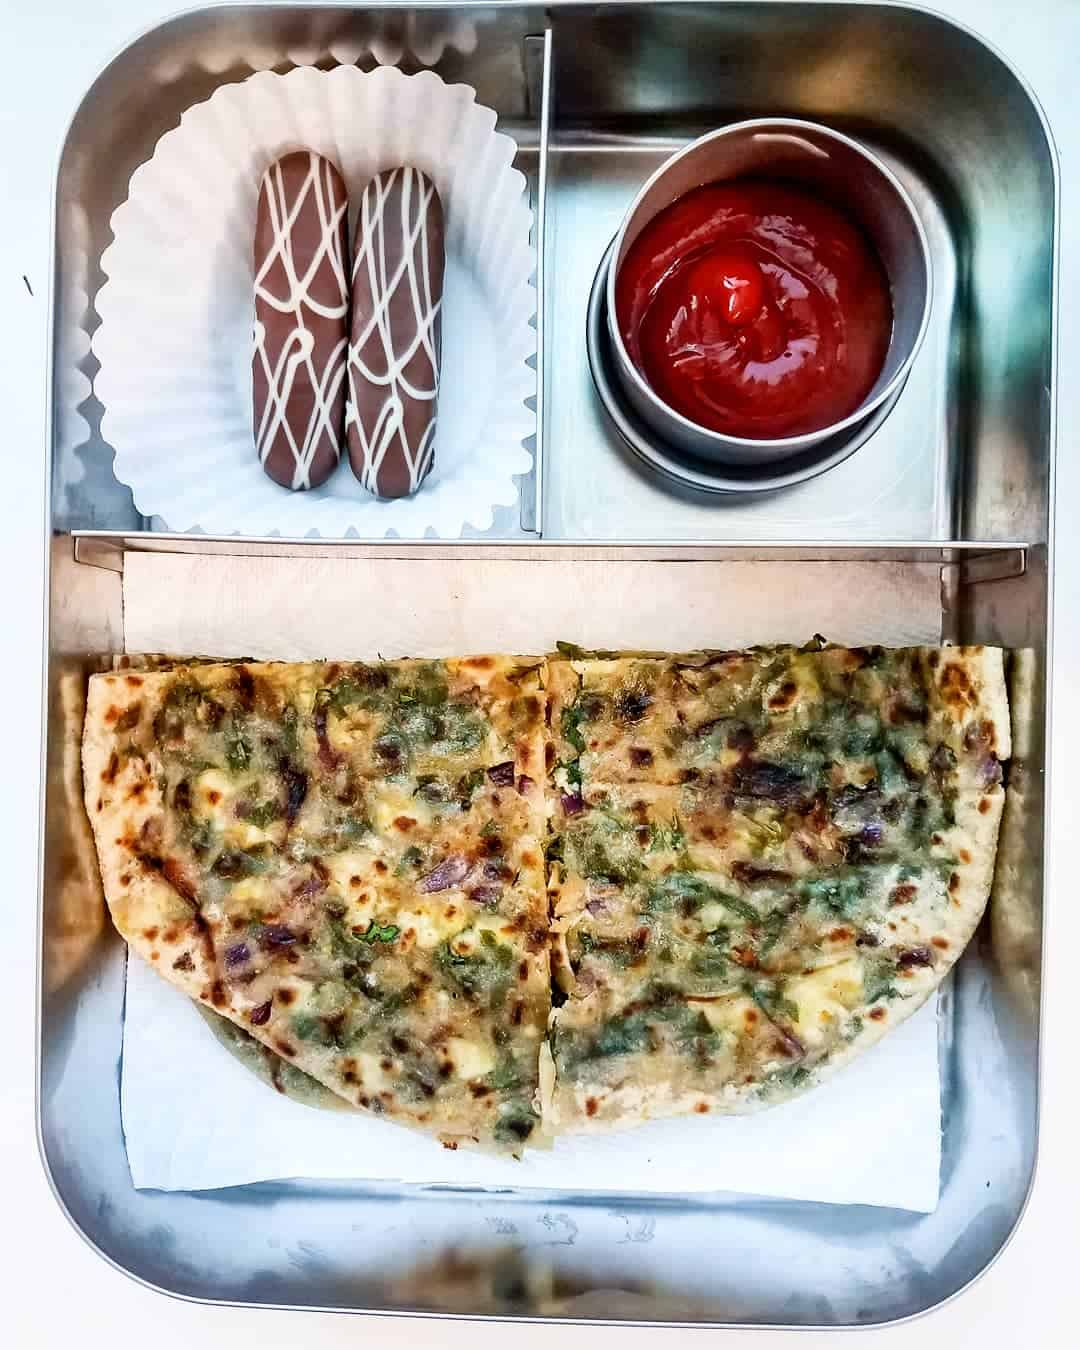 Palak Paneer Paratha ( spinach and cheese stuffed whole wheatflatbread), ketchup for dip-dip and Belgium cookie as sweet treat